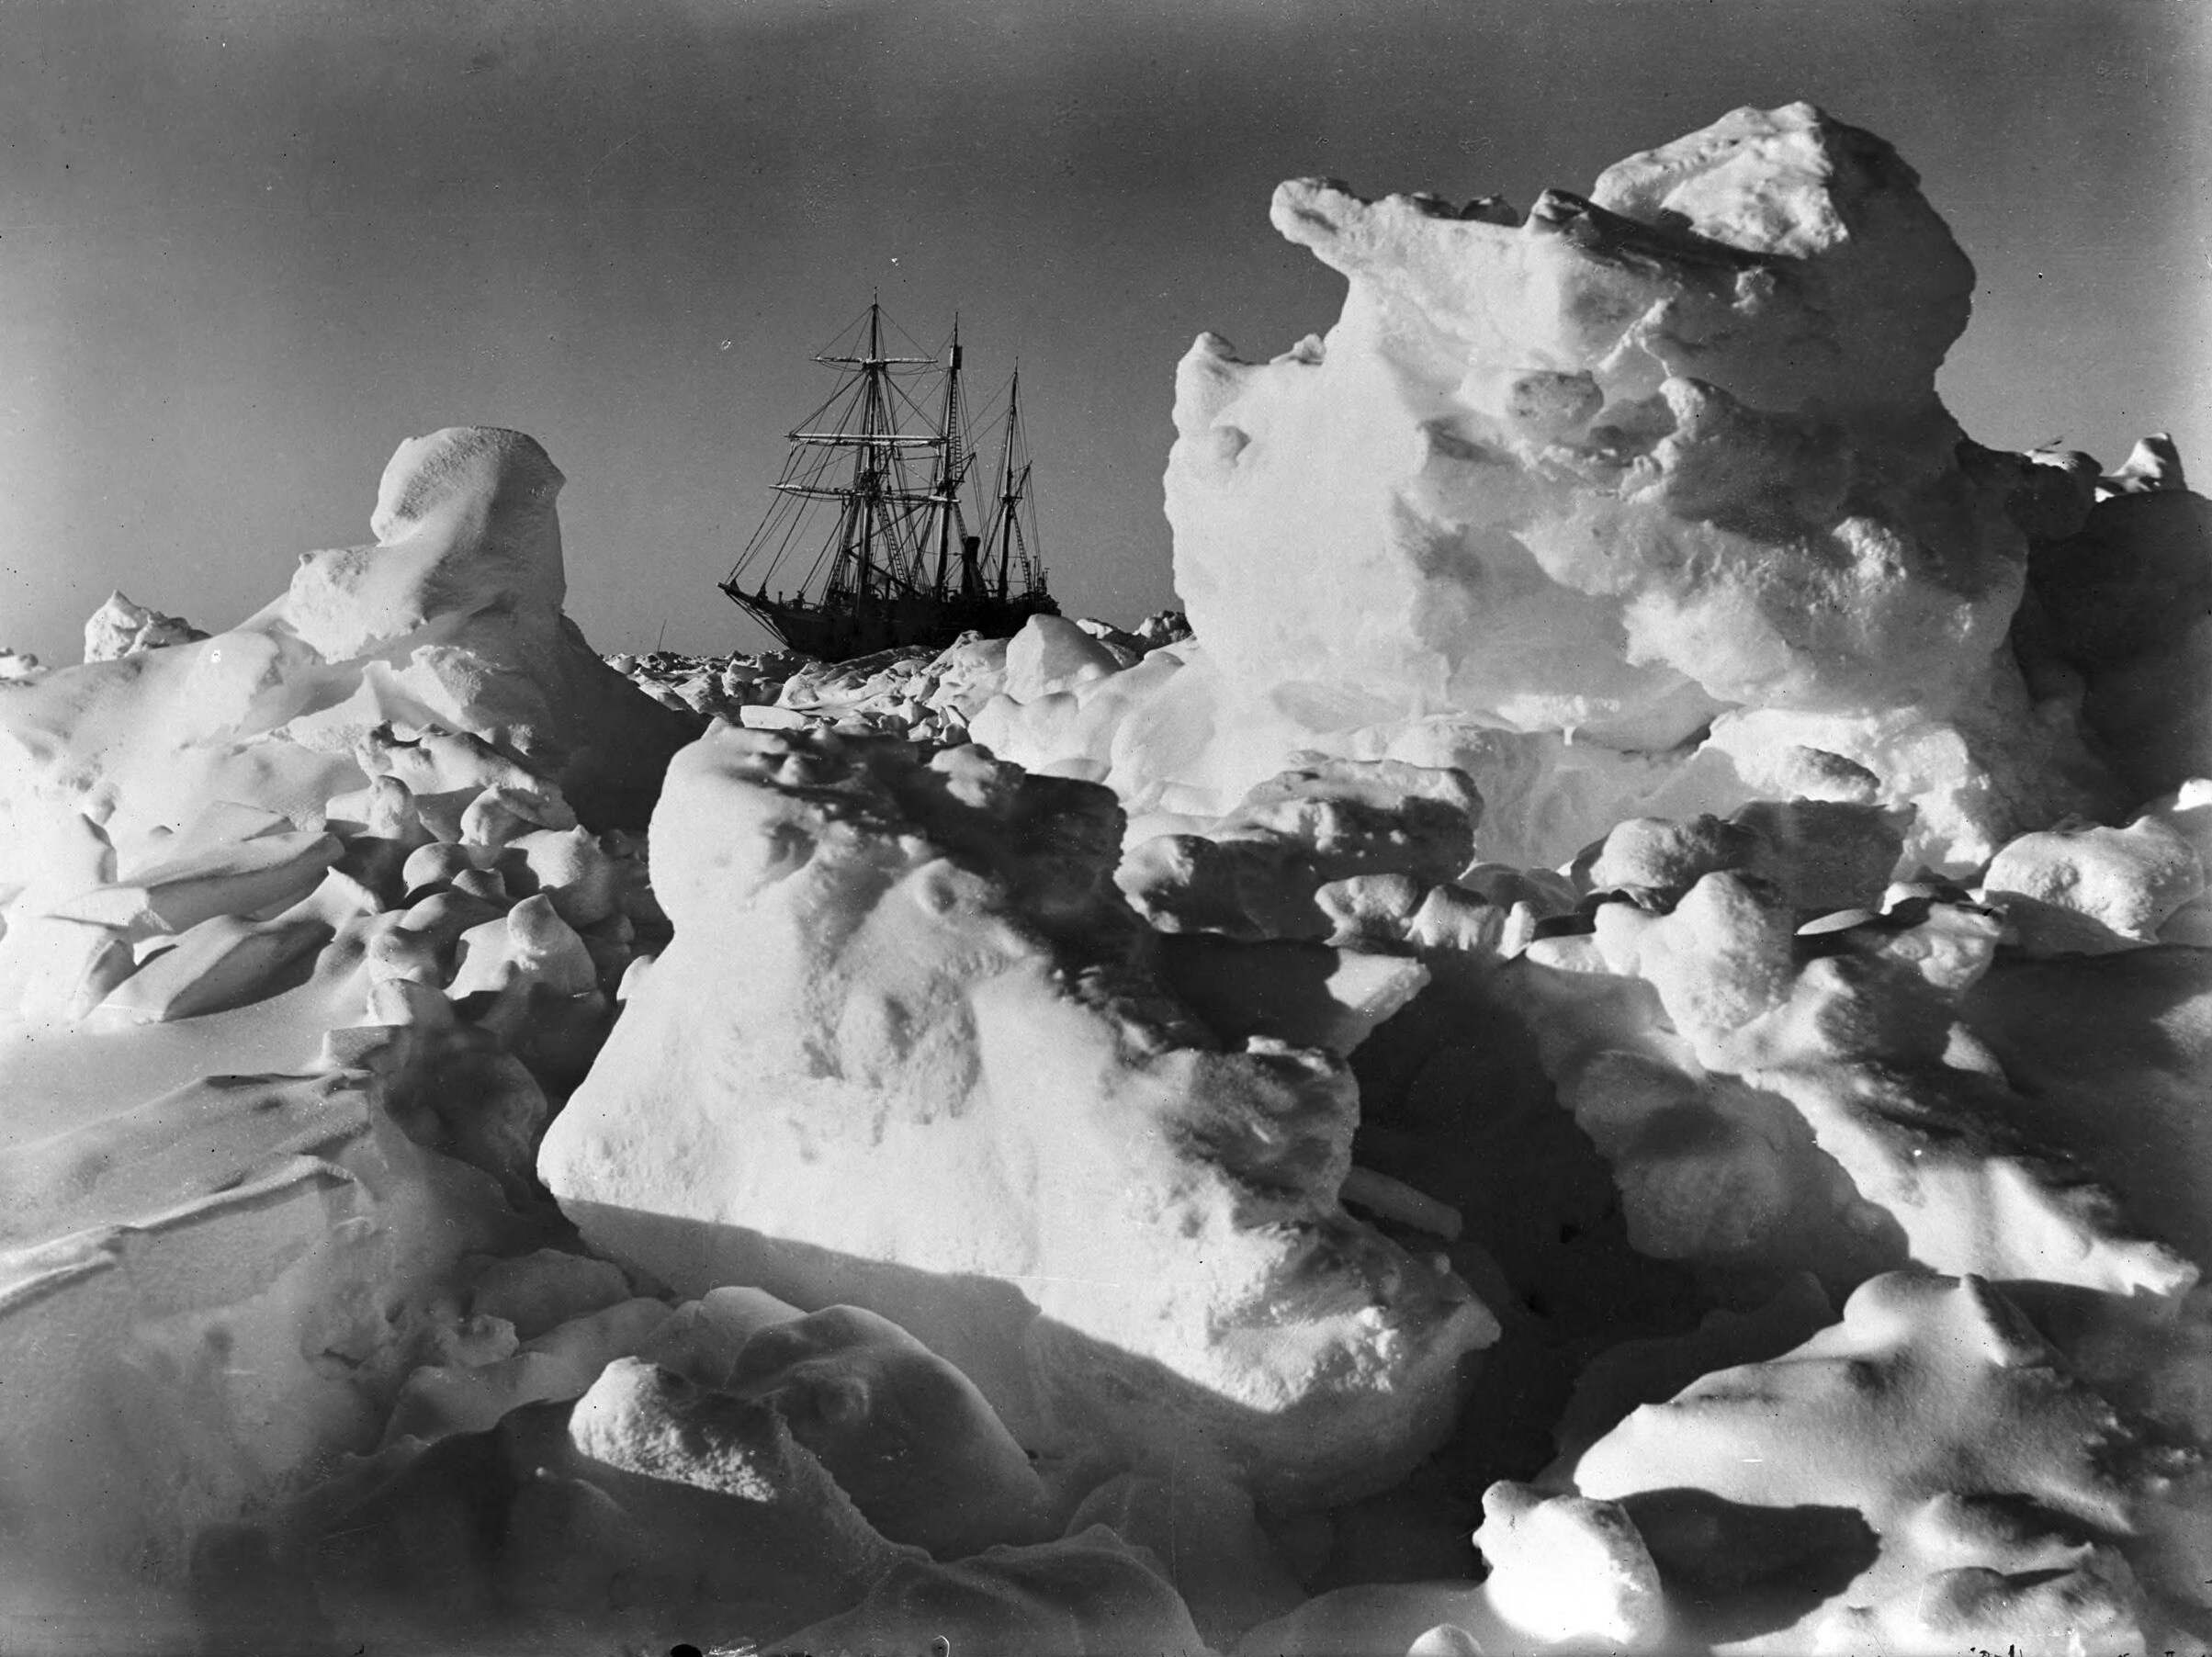 http://upload.wikimedia.org/wikipedia/commons/b/b7/Endurance_trapped_in_pack_ice.jpg